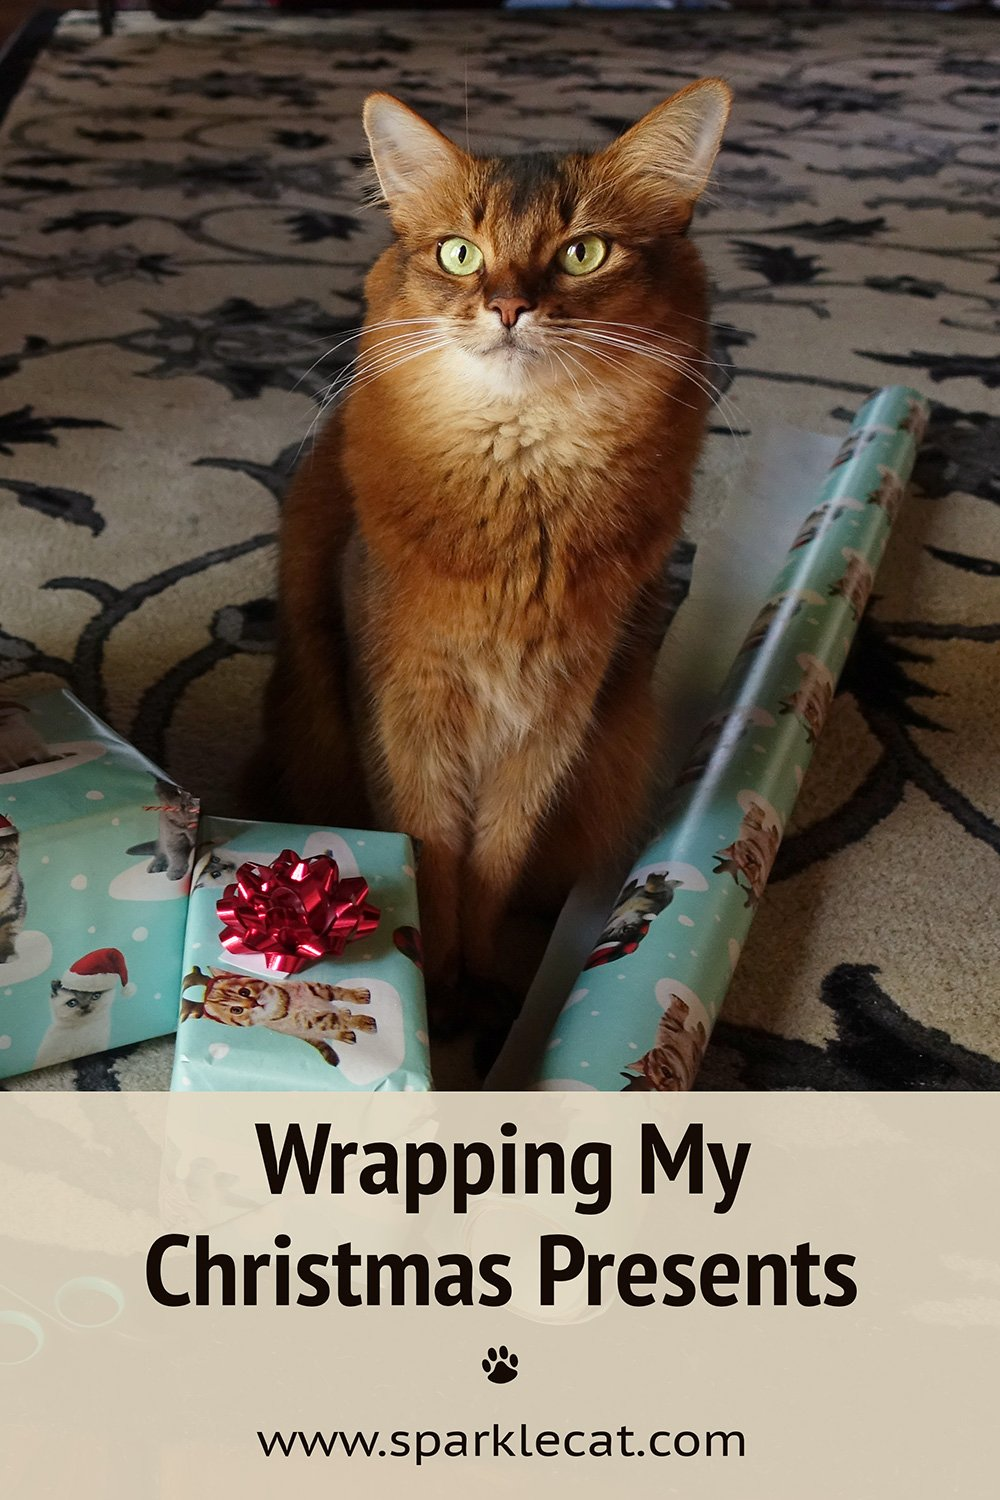 Wrapping My Christmas Presents